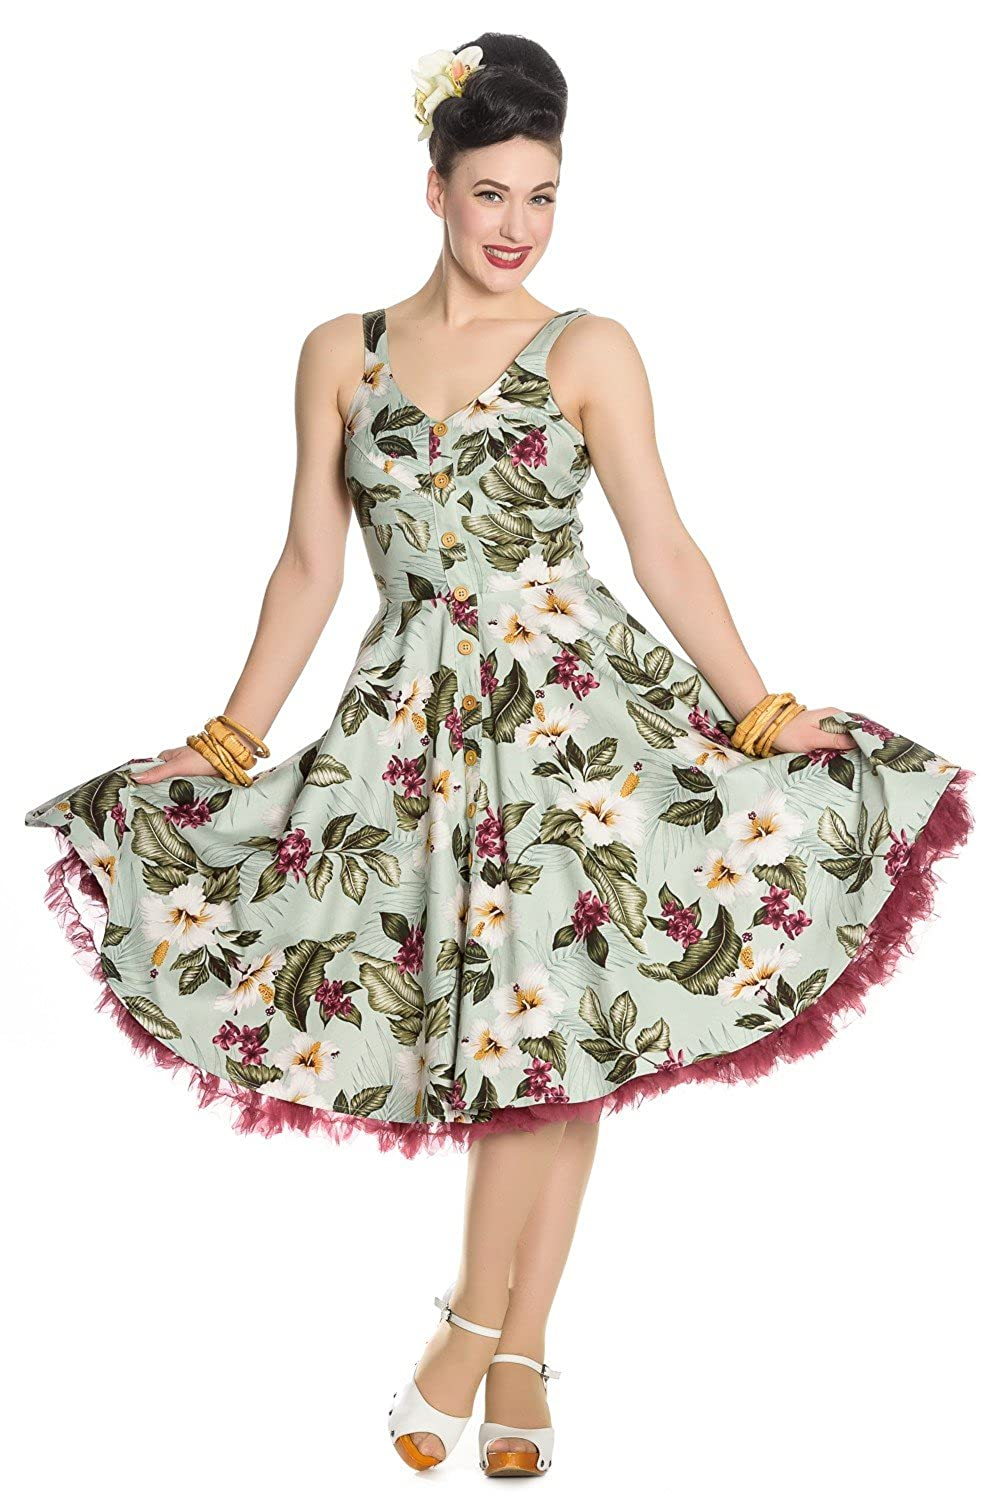 500 Vintage Style Dresses for Sale | Vintage Inspired Dresses Hell Bunny Tahiti Tropical Floral 50s Vintage Rockabilly Flare Swing Party Dress $61.99 AT vintagedancer.com